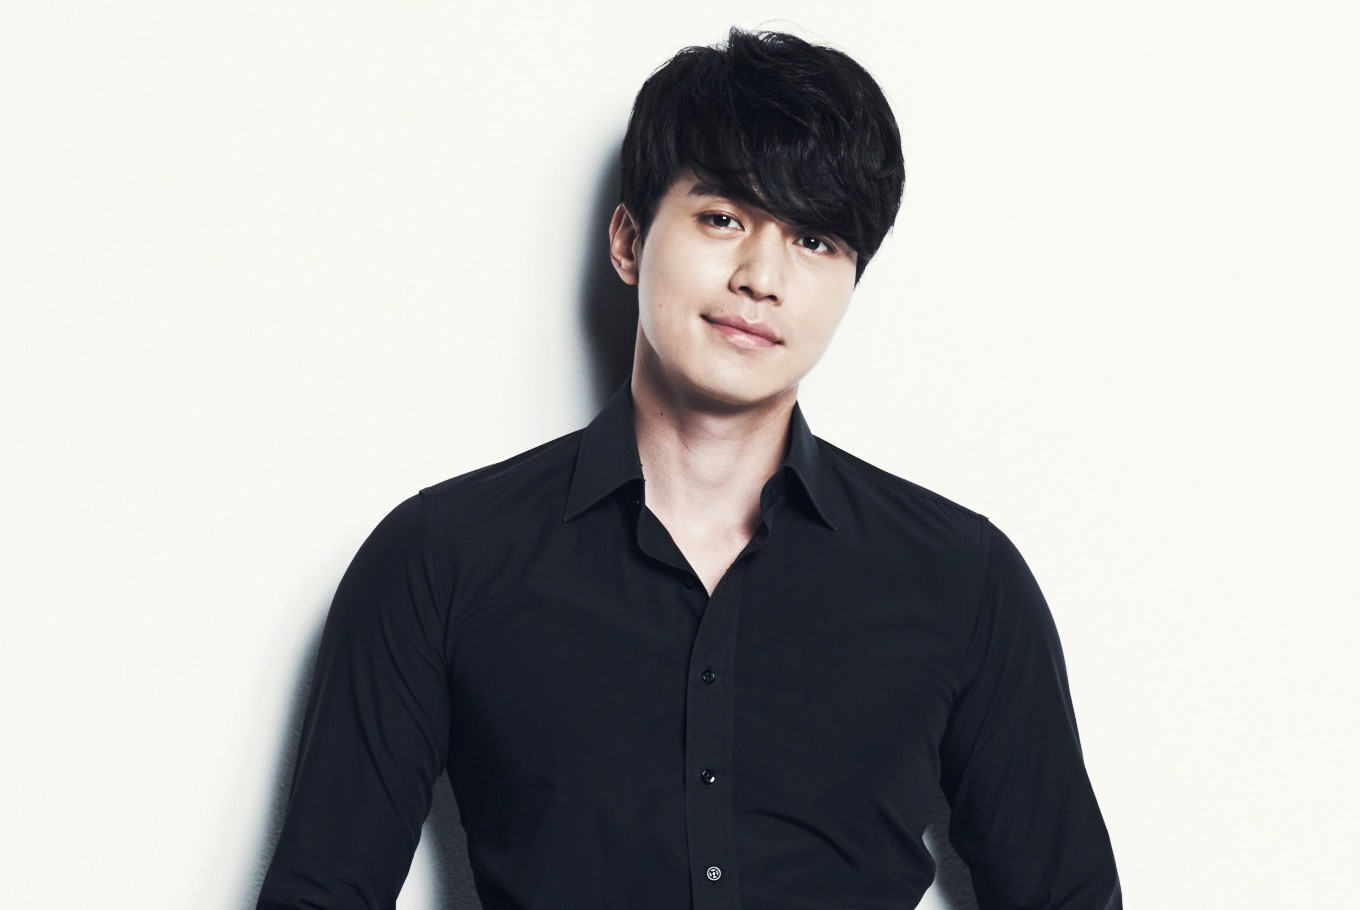 Lee Dong-wook confirms 7 cities for Asia tour - People ...